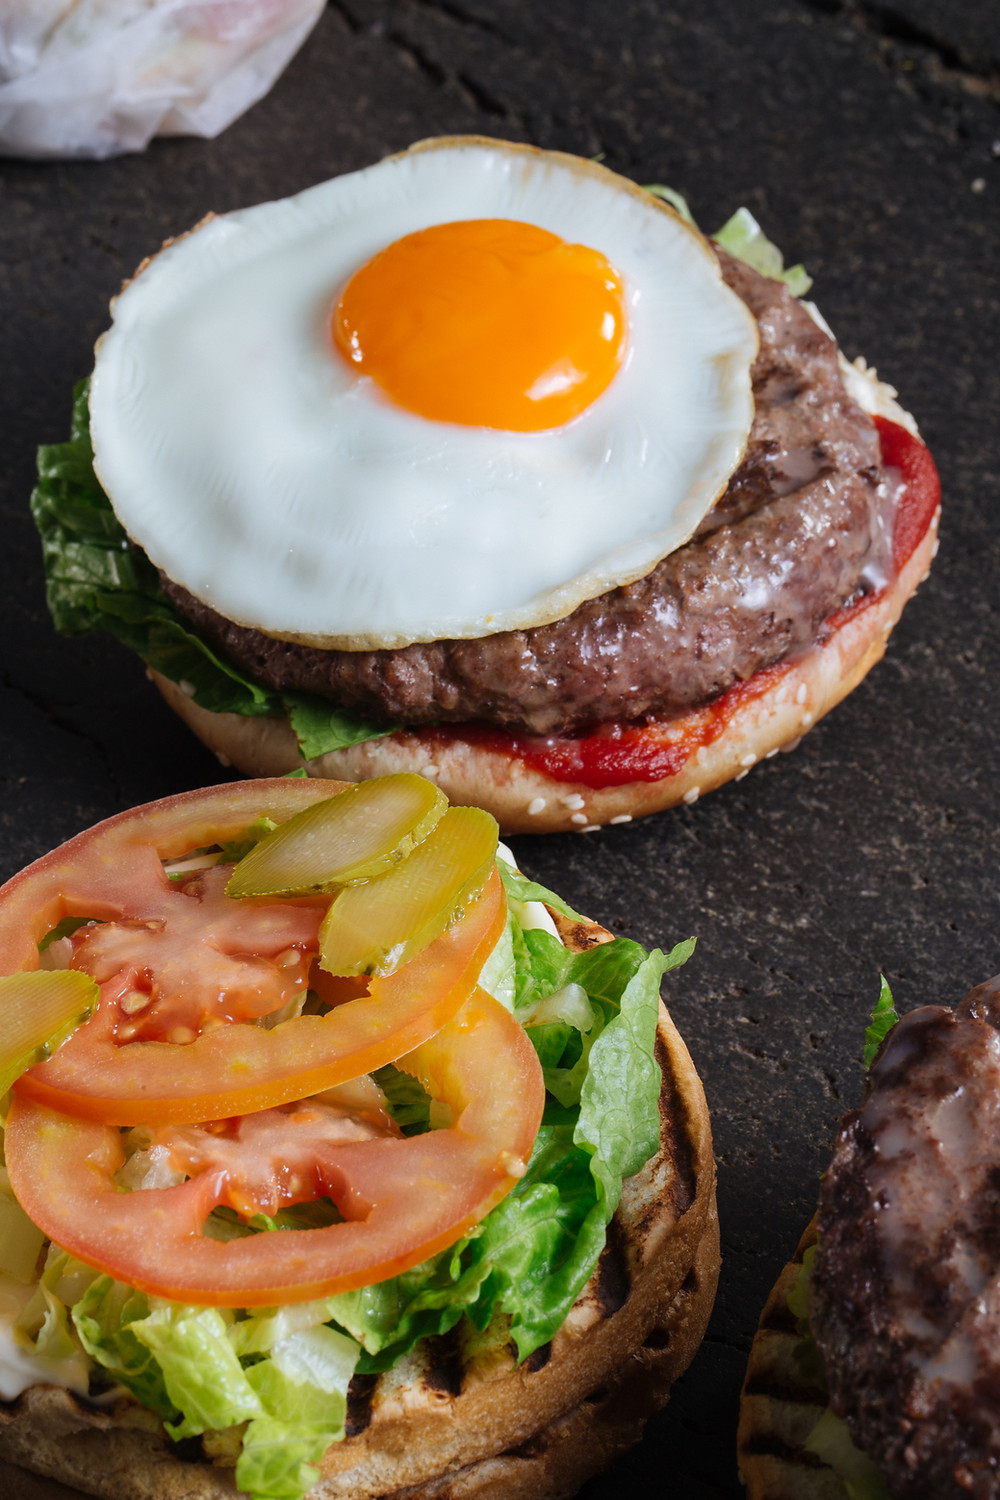 Hamburger with fried egg, fast food can lead to obesity